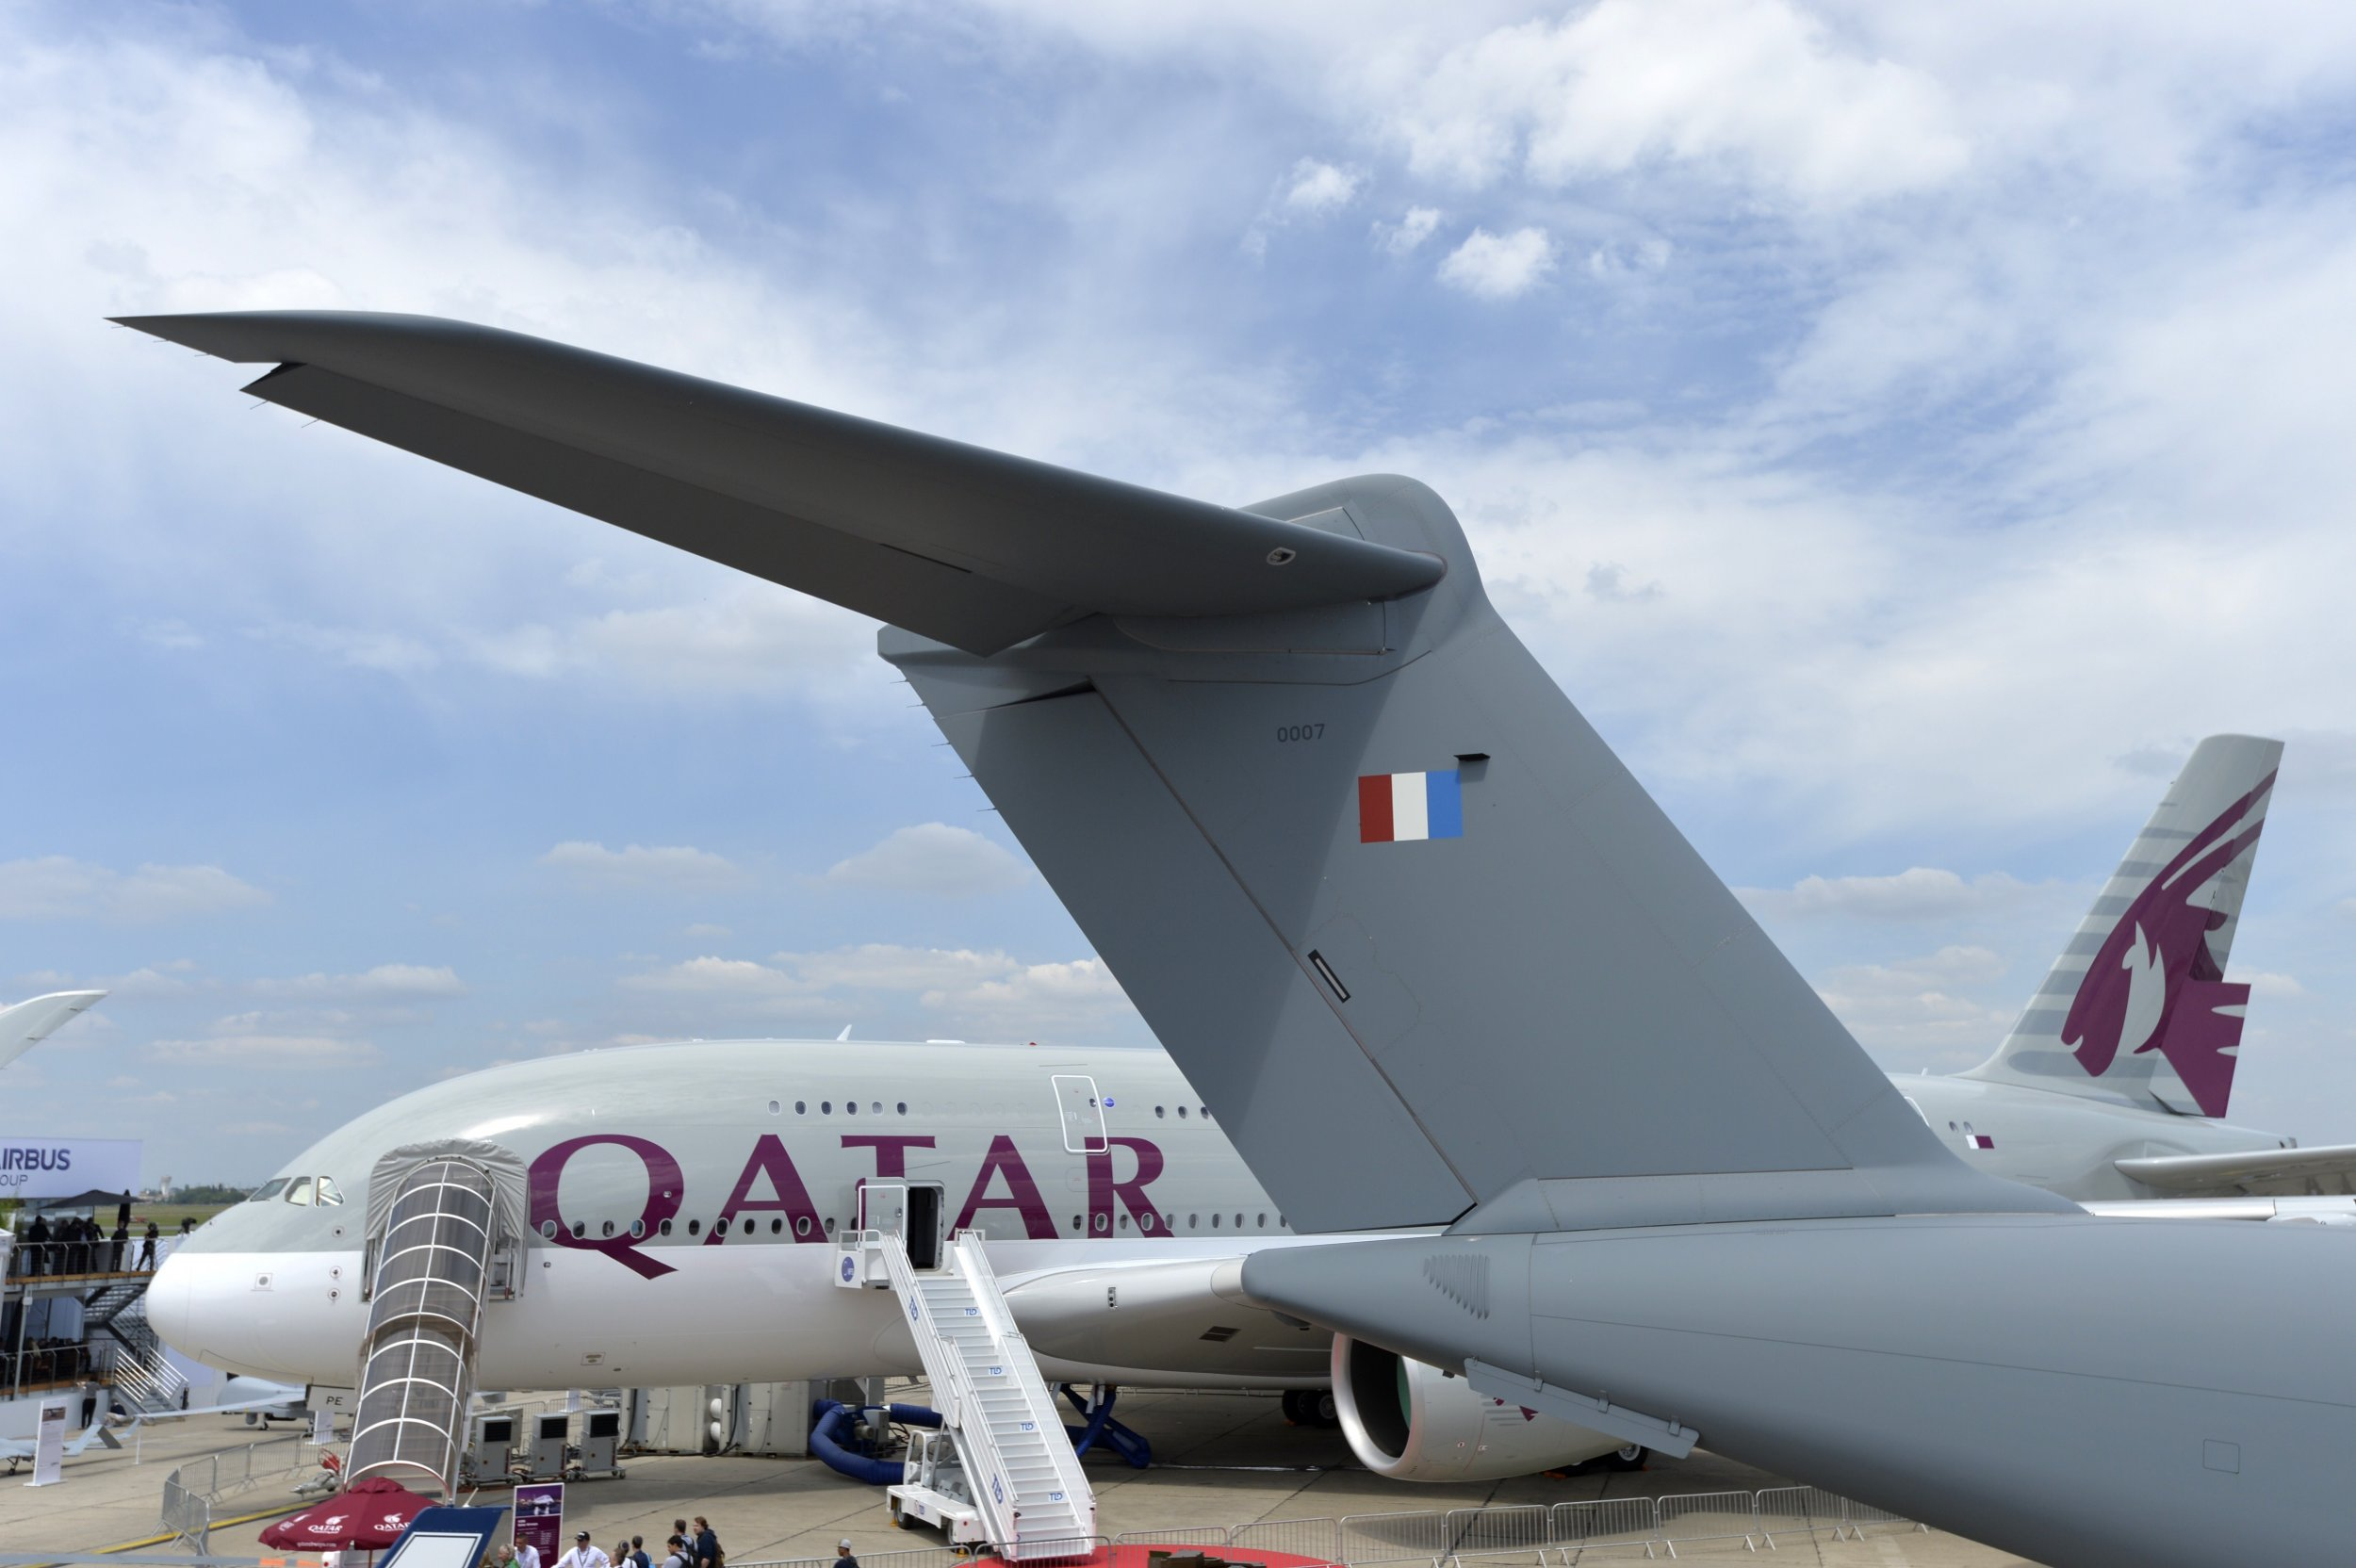 Qatar Airways at Le Bourget airport